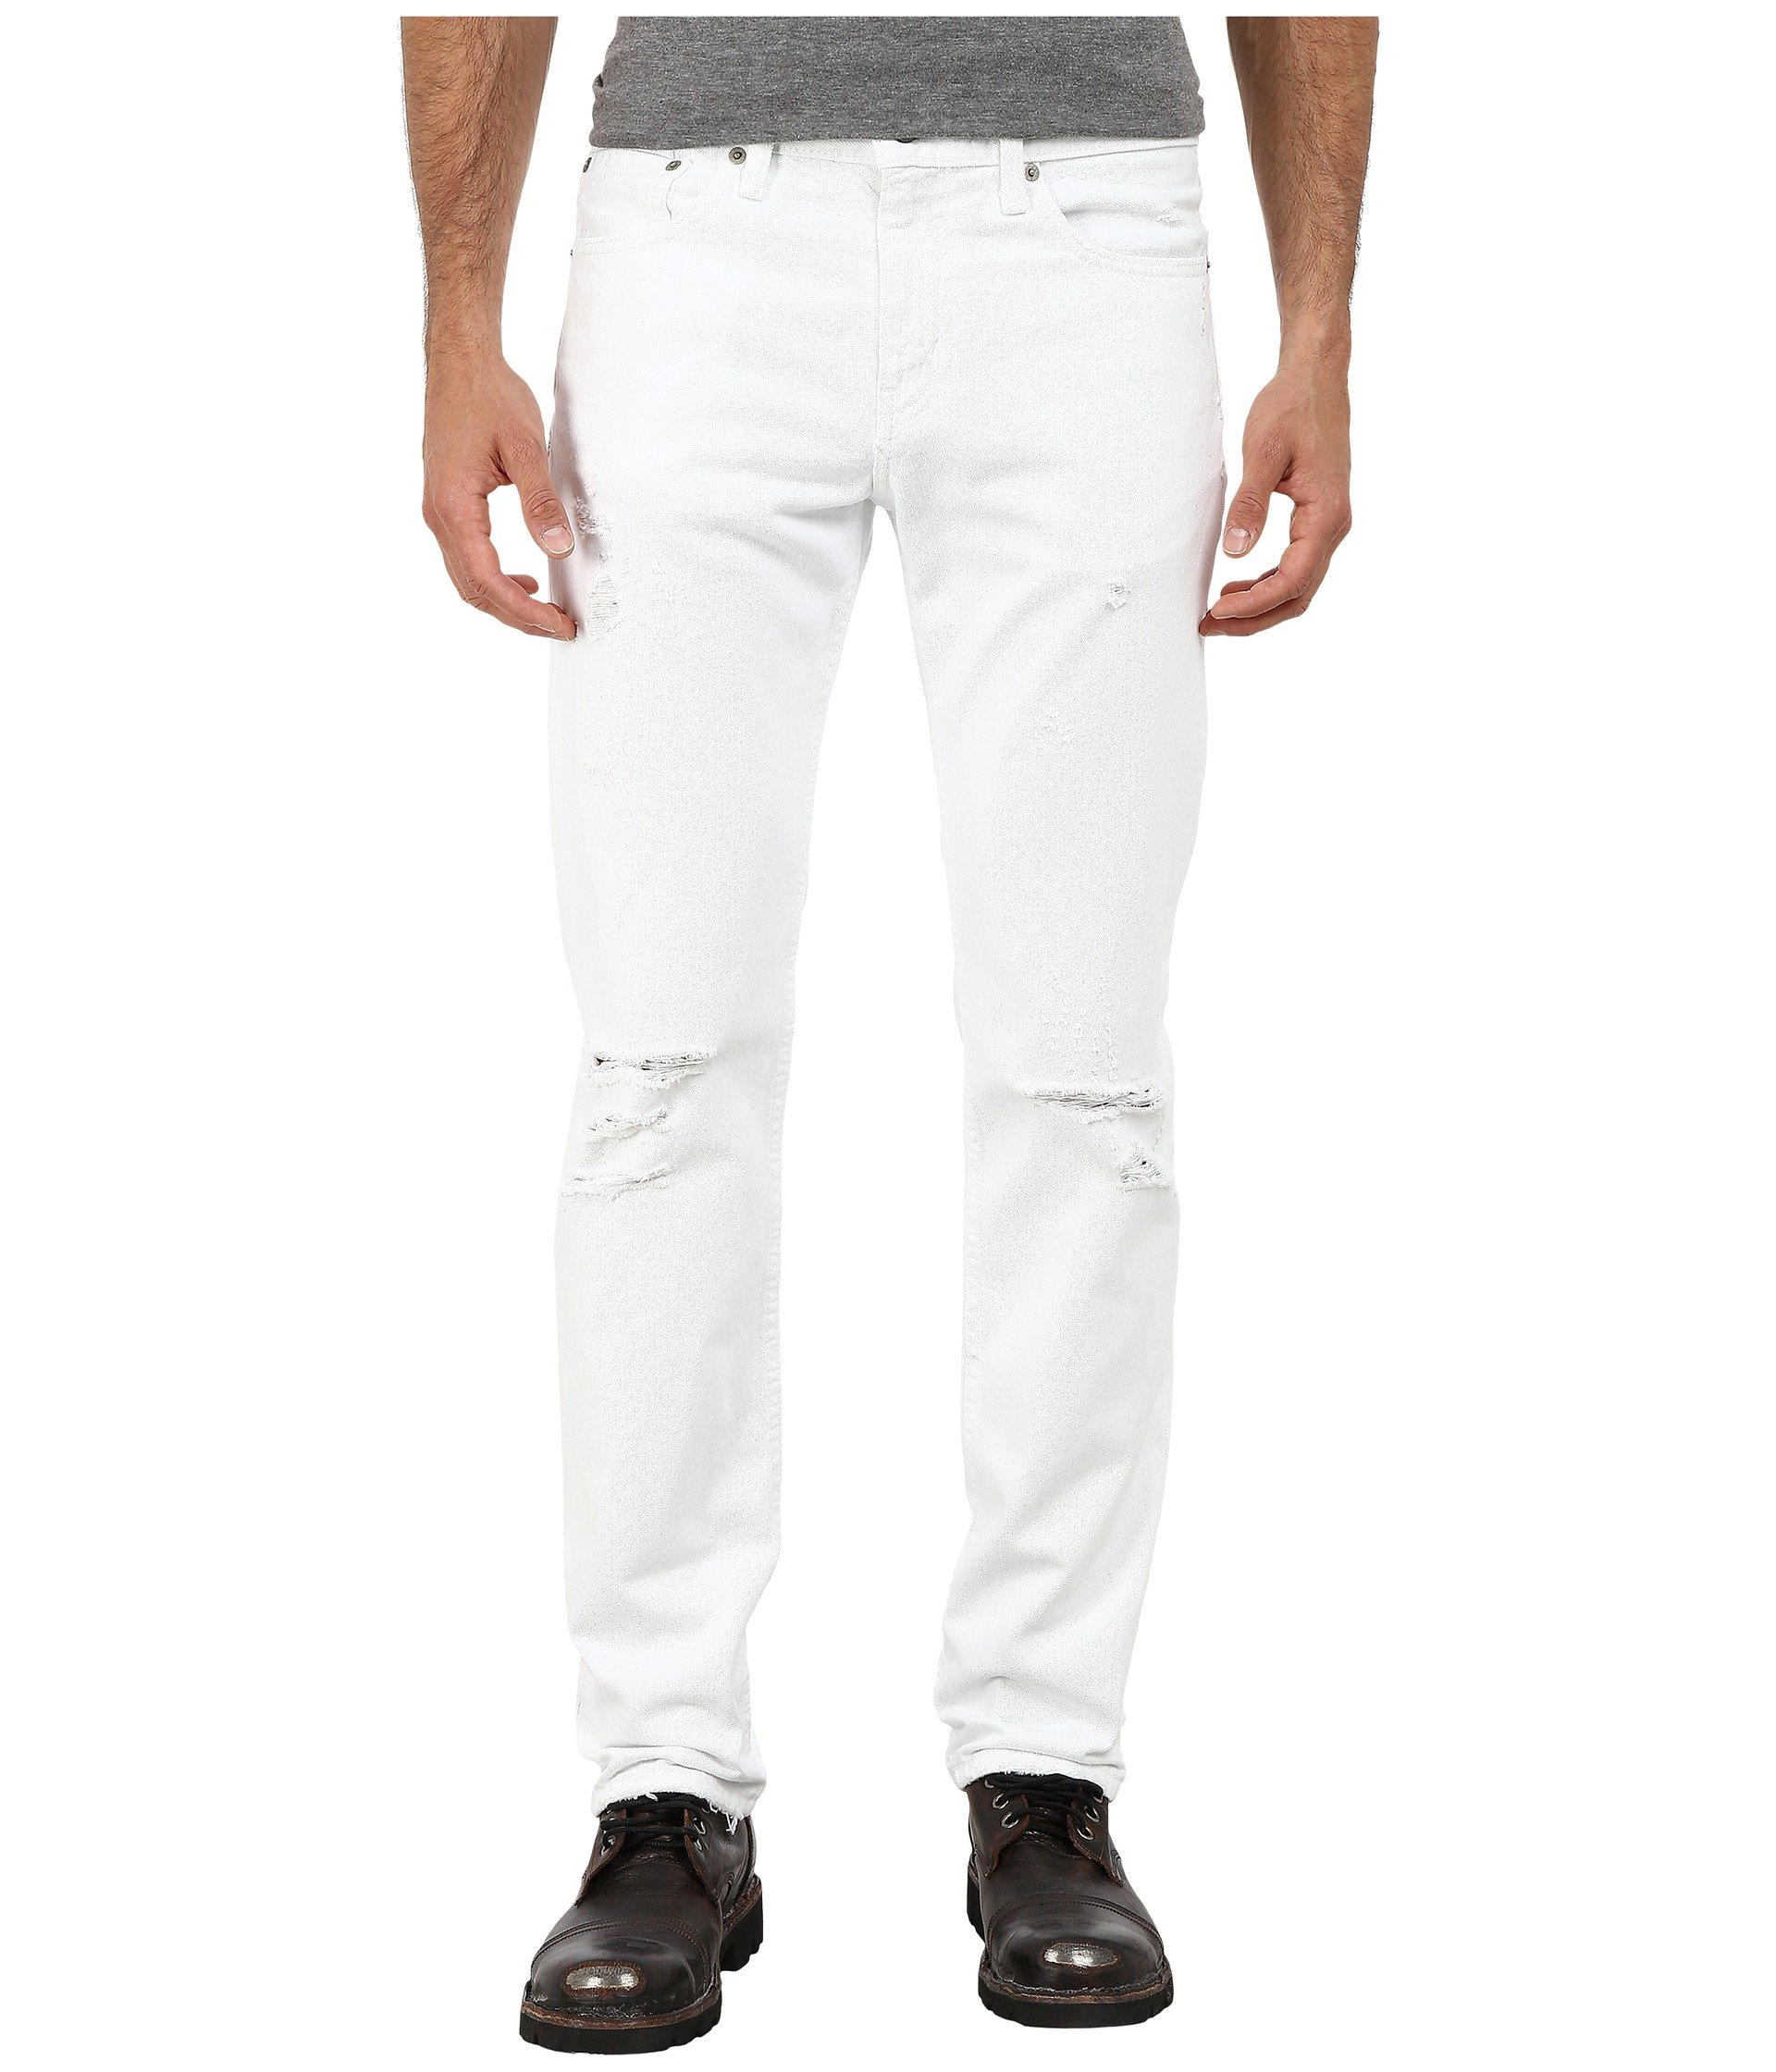 Jean 511 Levi's Whiteoutbull Optic Fit Men's Denim Slim Galleon TPXzqE